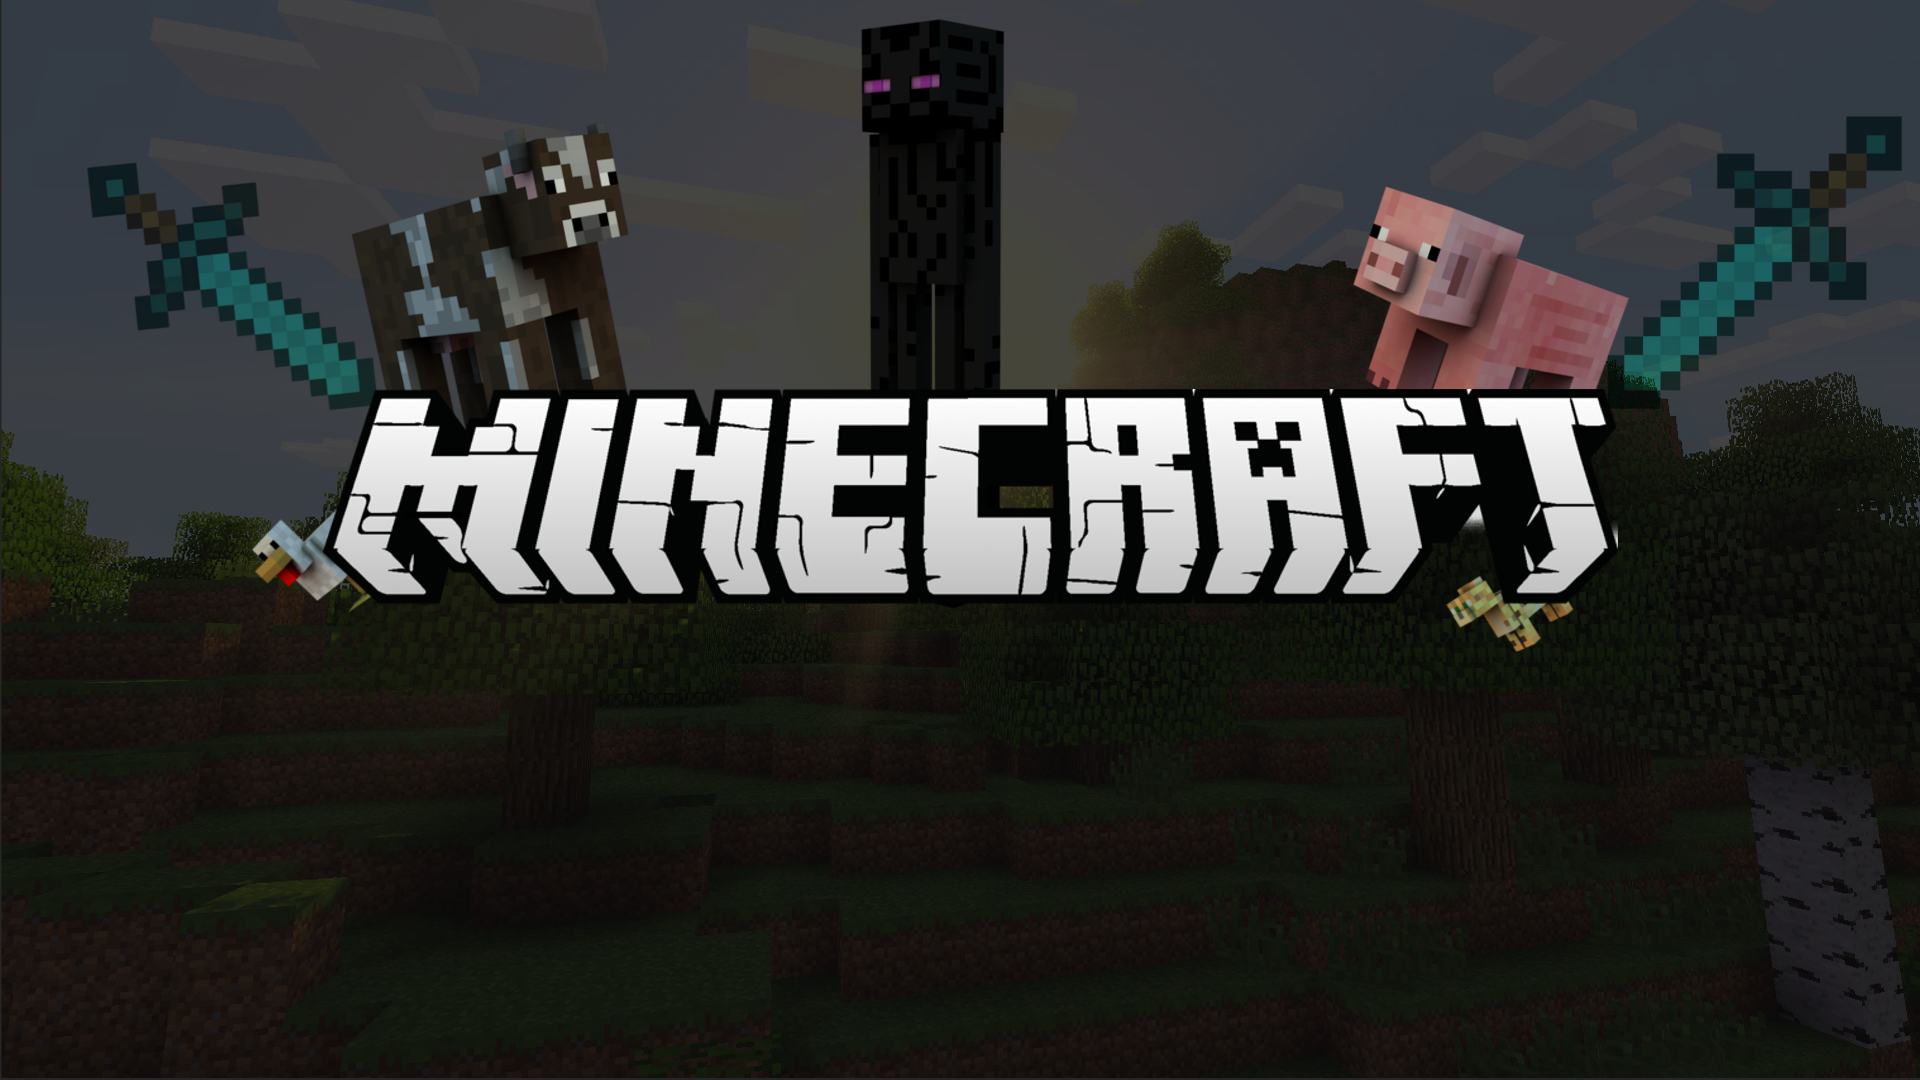 Minecraft 2048 Pixels Wide 1920x1080